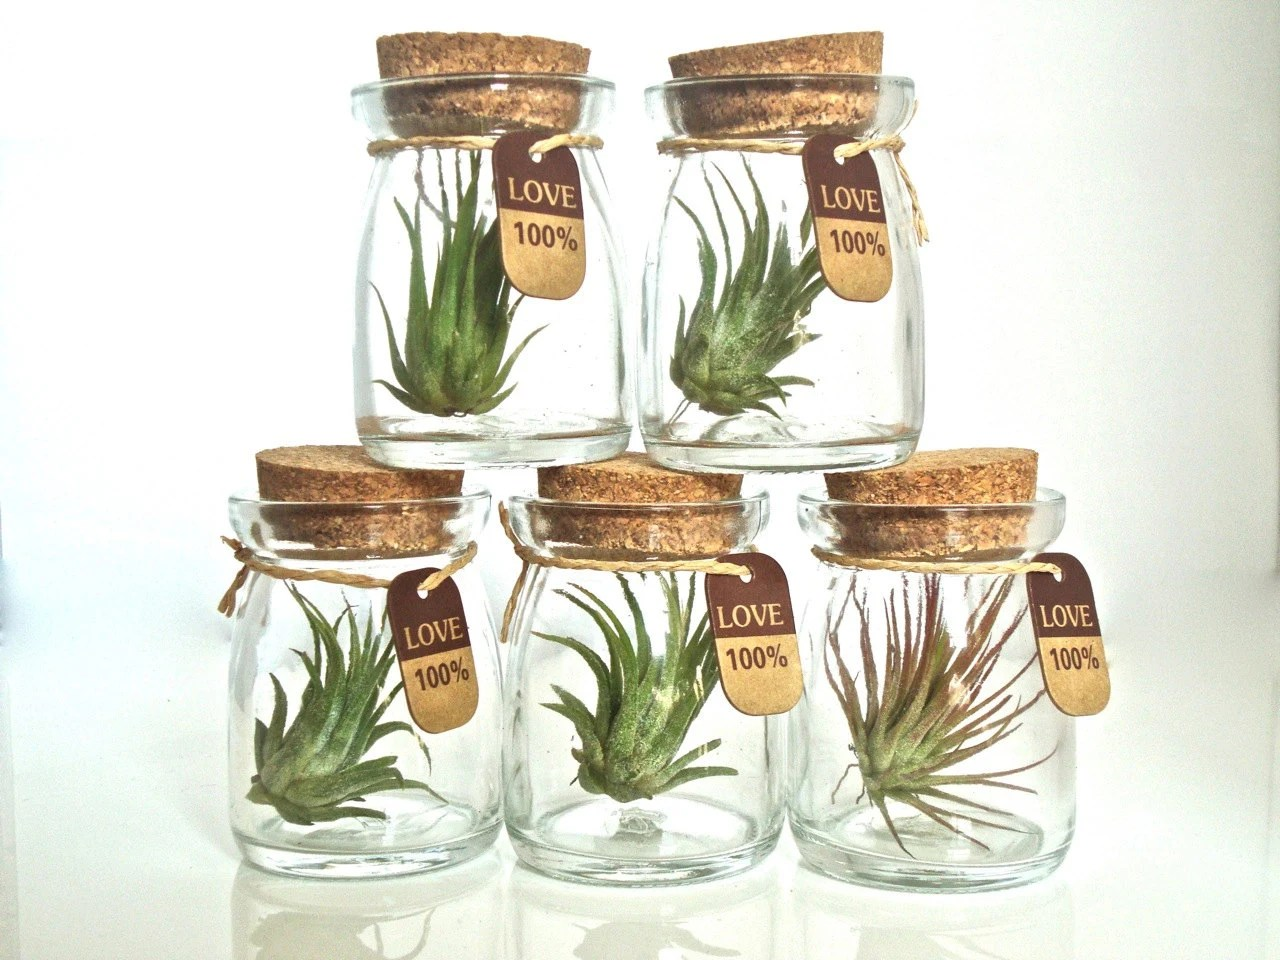 Luftpflanzen Kaufen Items Similar To Sale Five 100% Love Cute Little Air Plant